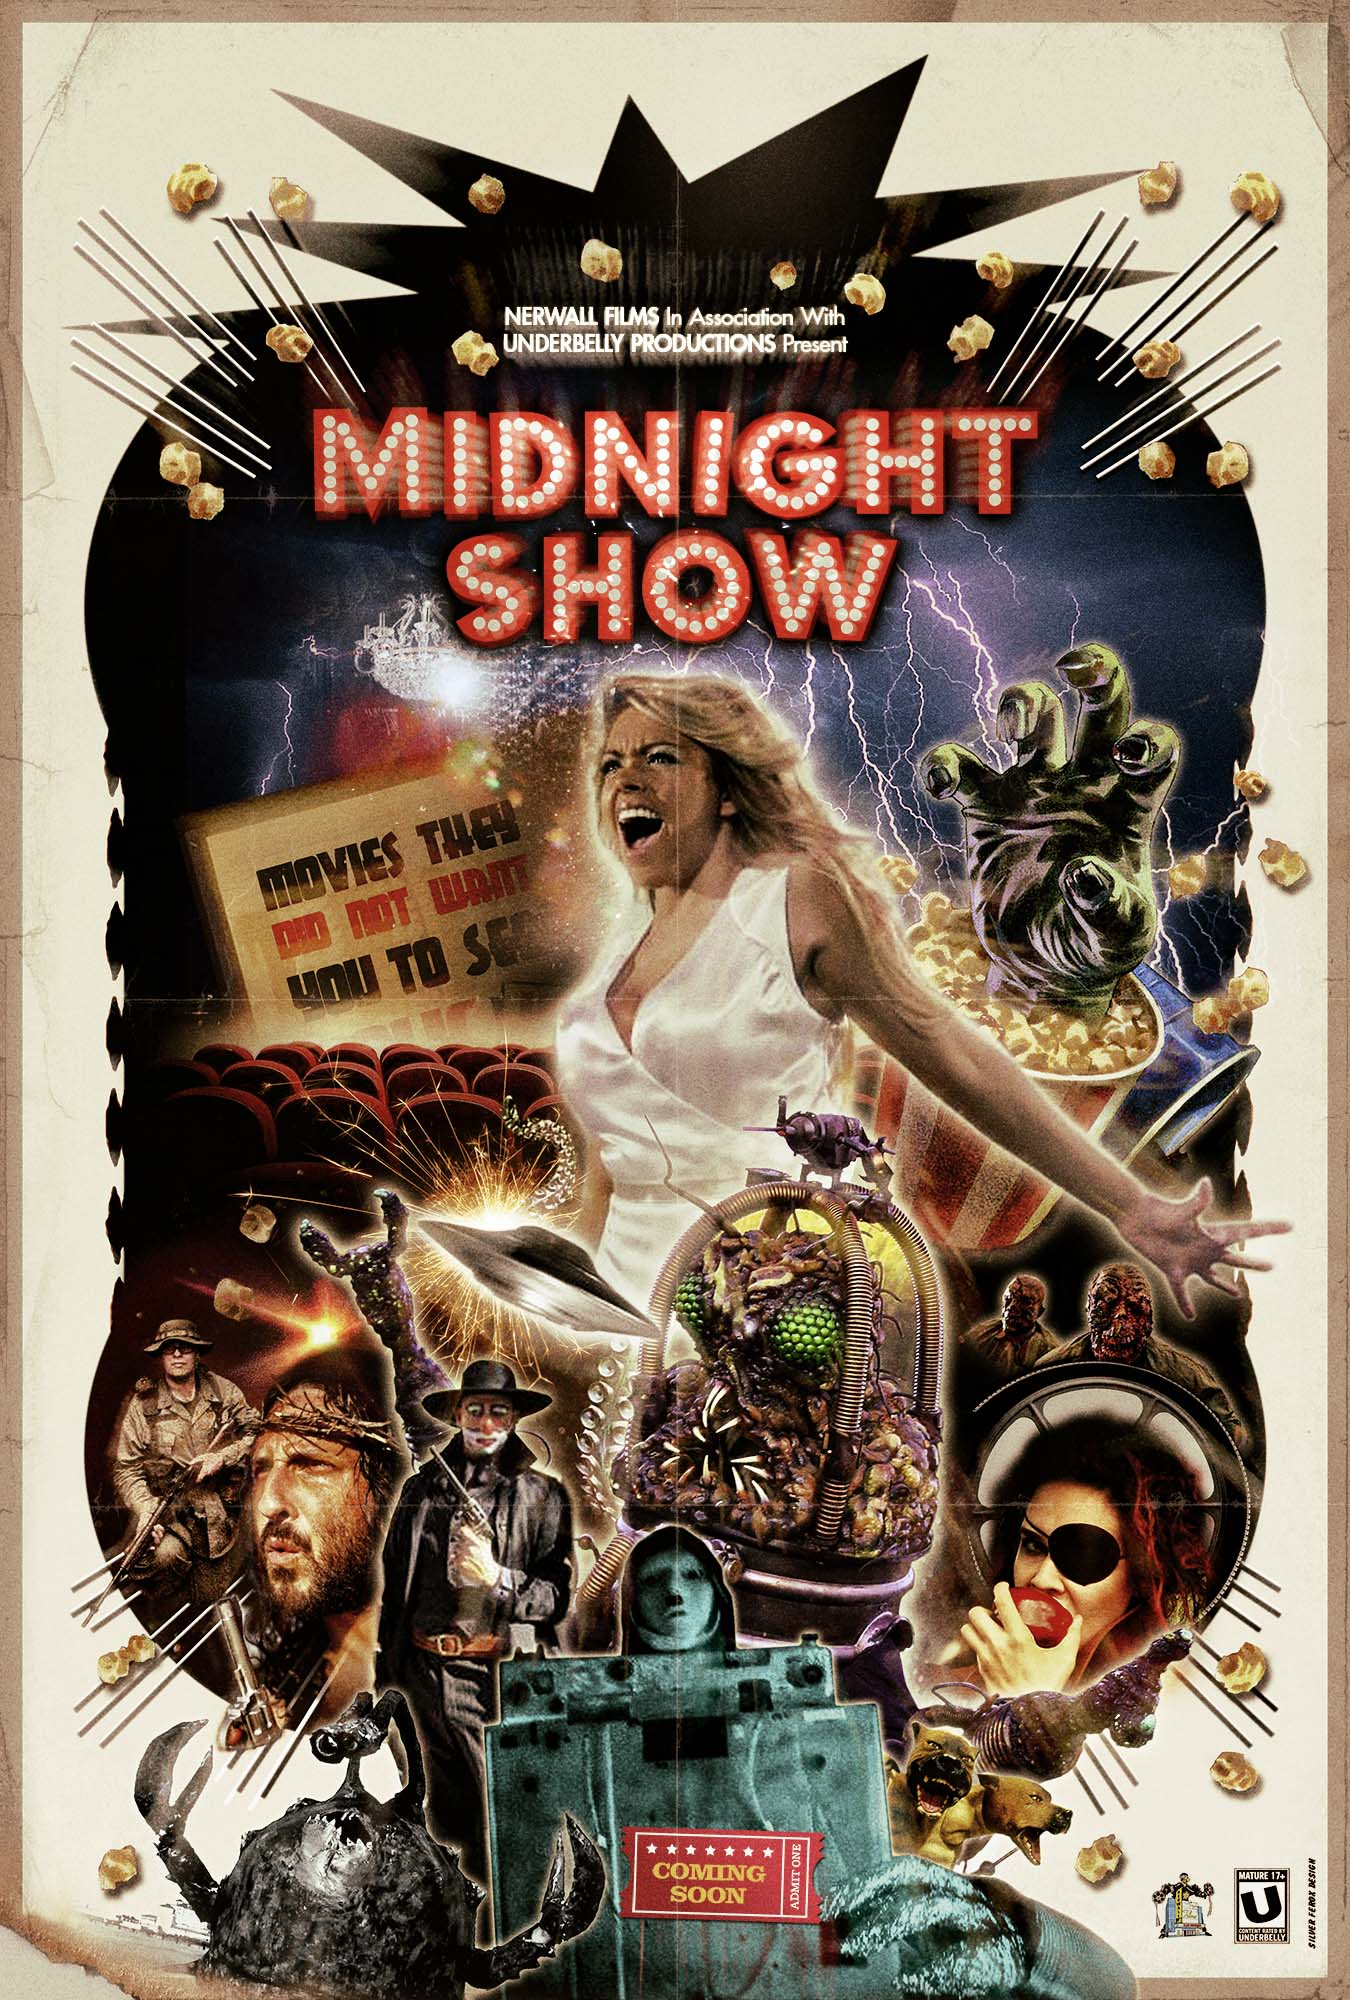 Pair Of Retro Posters For Indie Trash Cinema Inspired Midnight Show